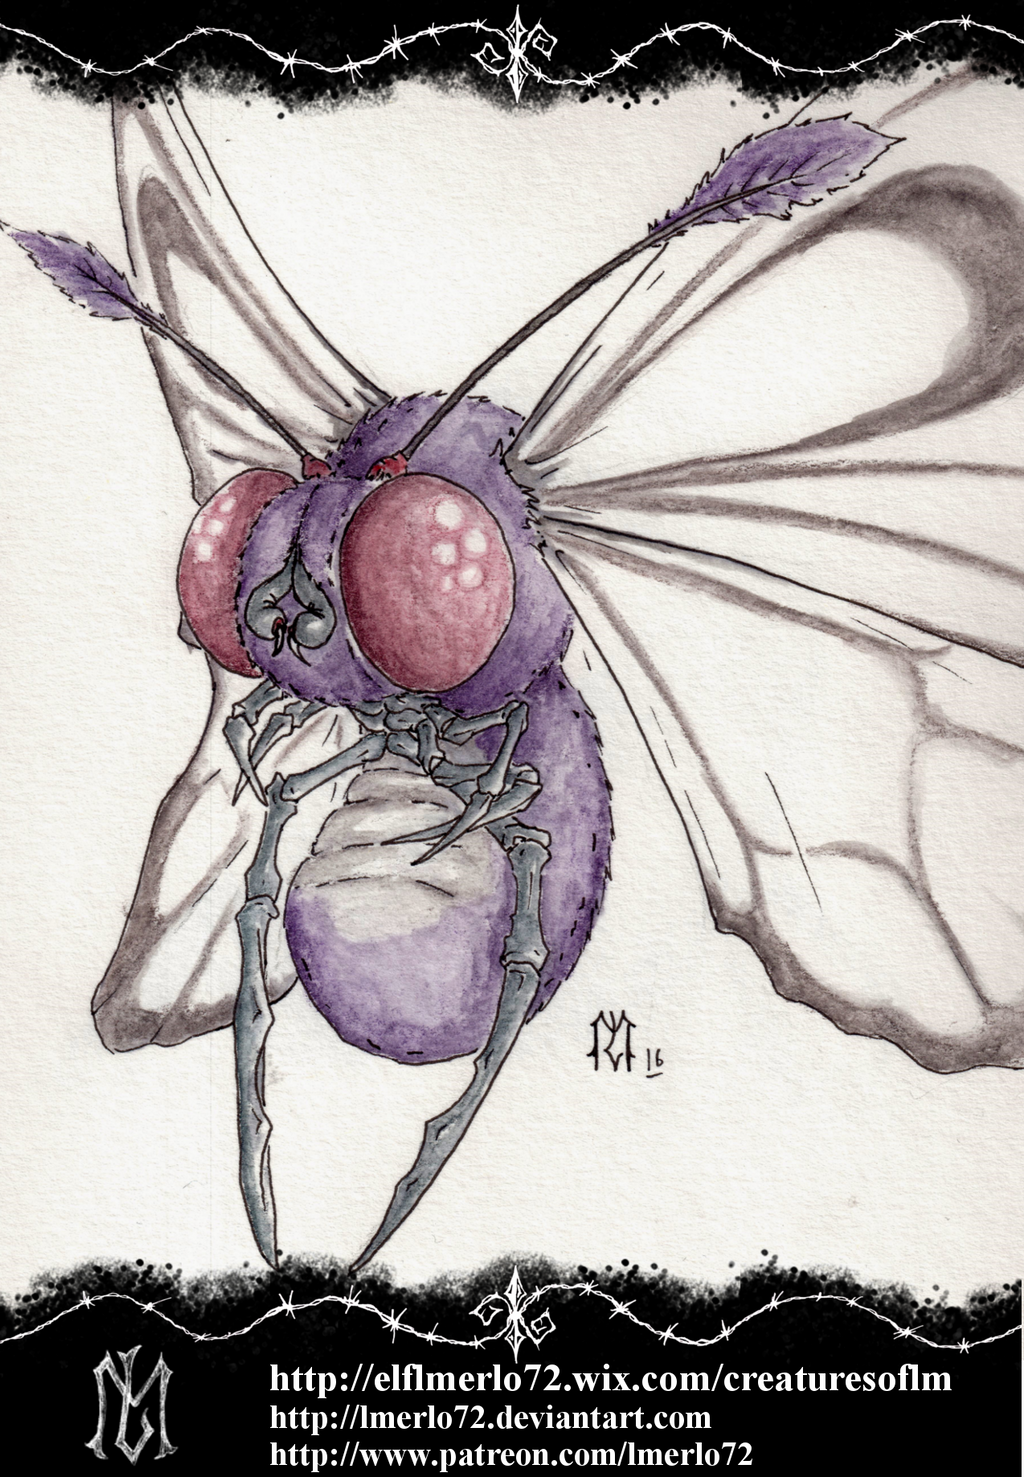 Pokedex Project: Butterfree